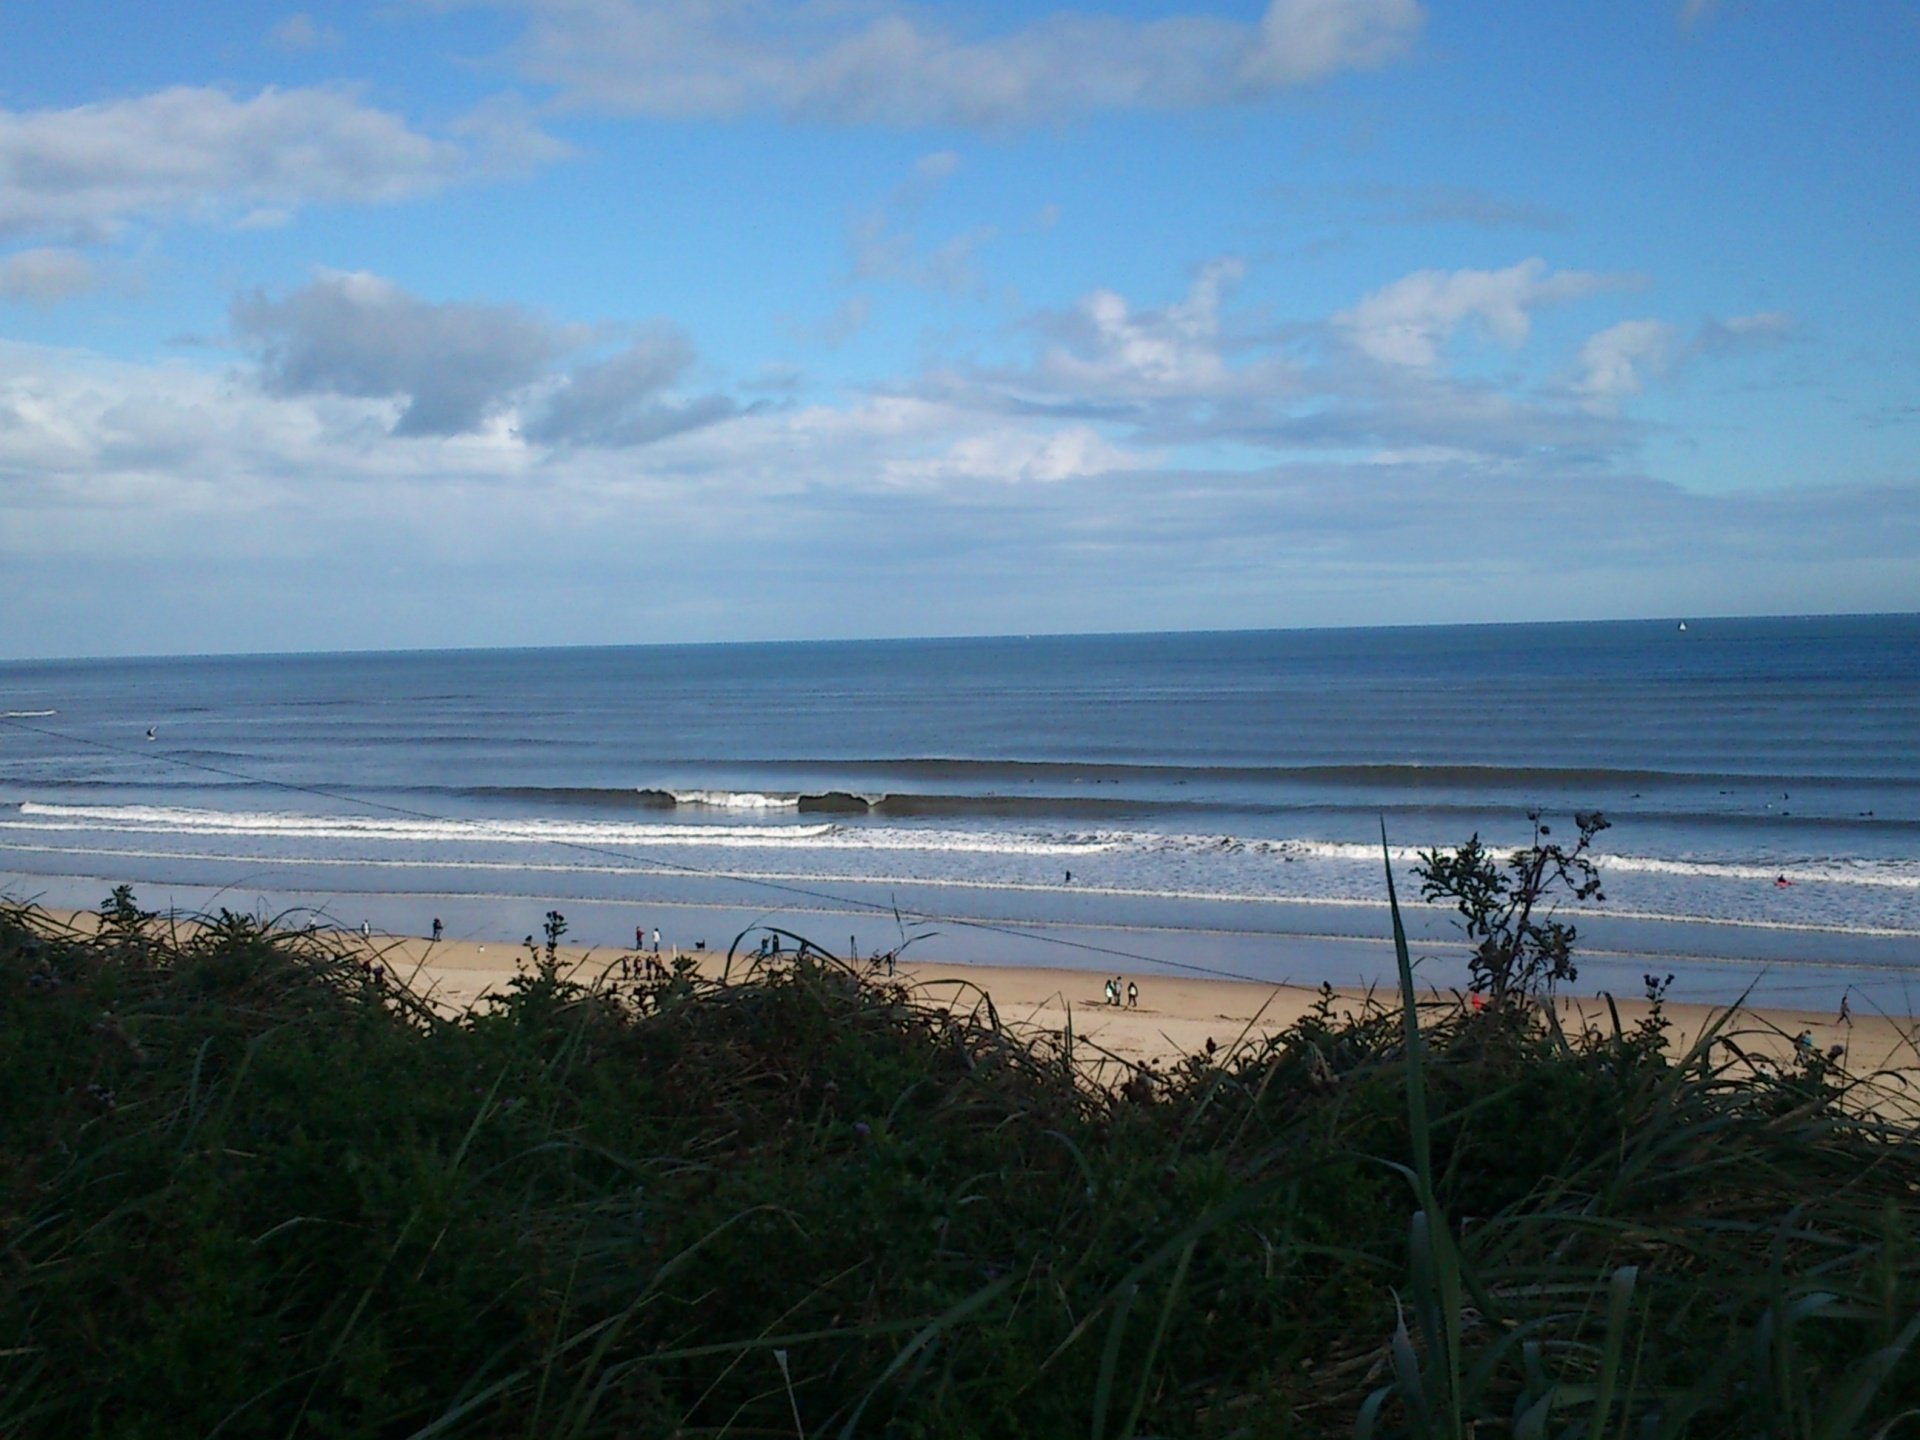 Surf & Turf Jay's photo of Tynemouth - Longsands